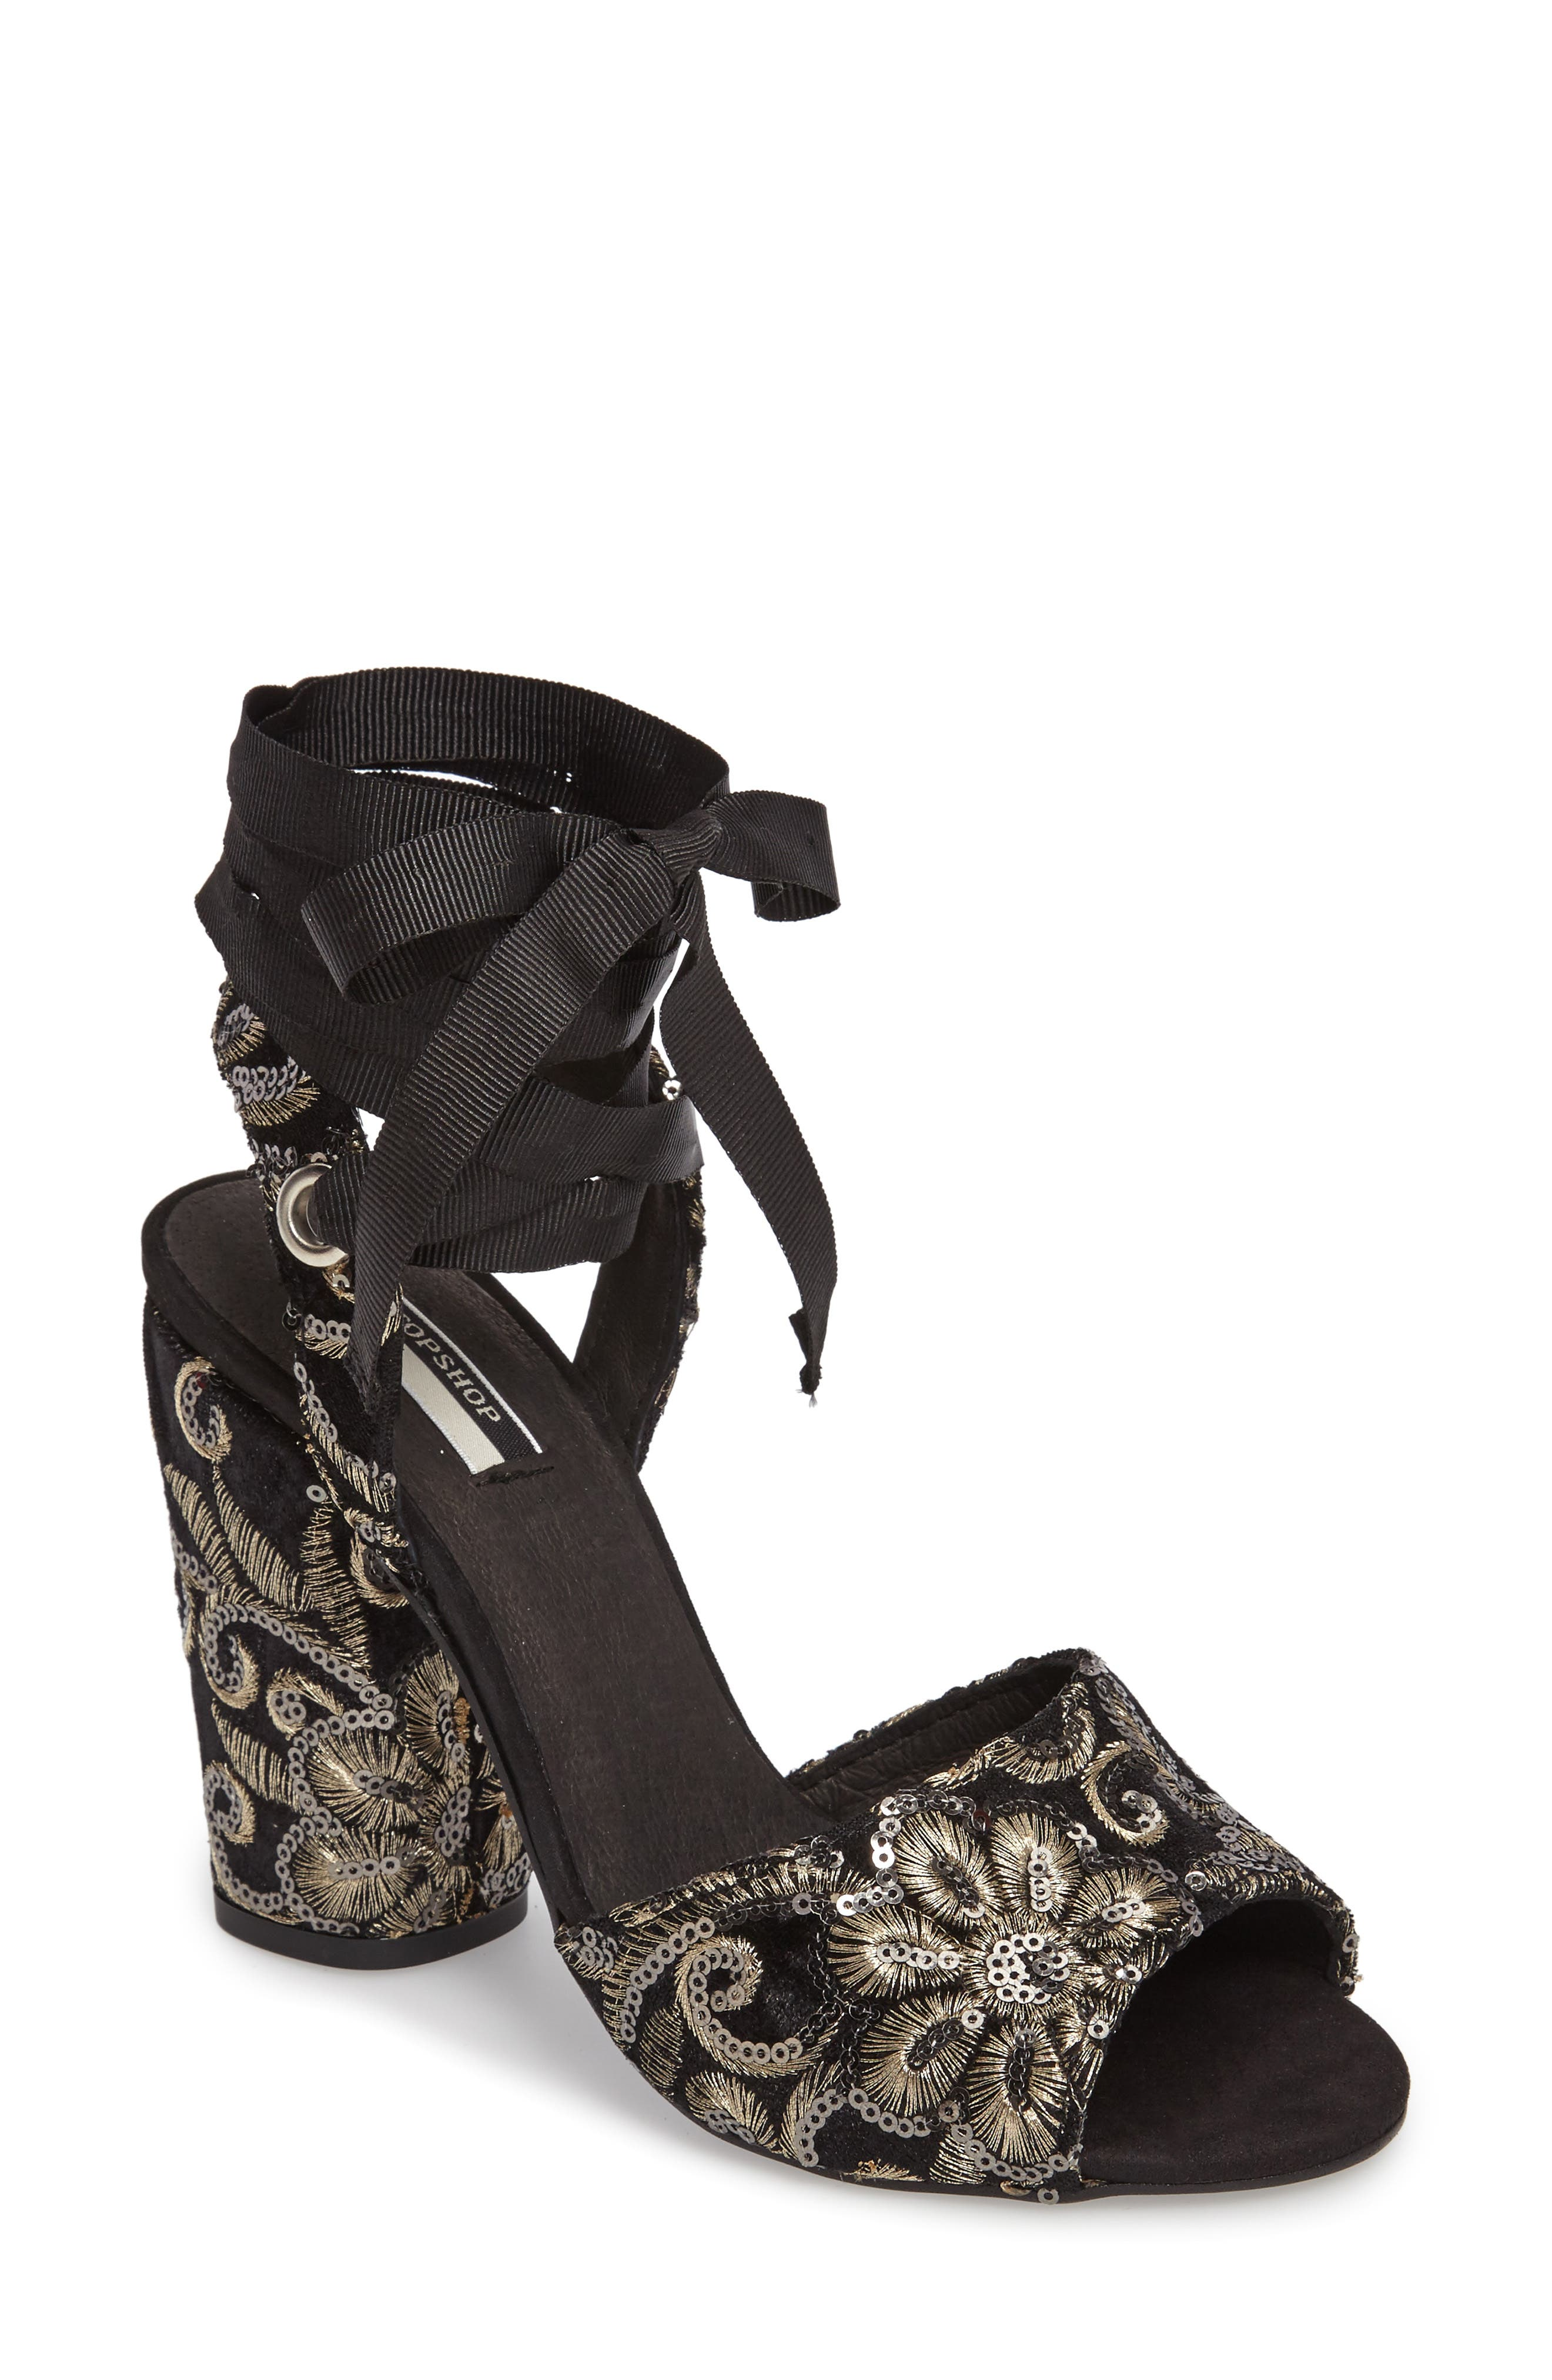 Main Image - Topshop Rioja Embroidered Lace-Up Sandals (Women)